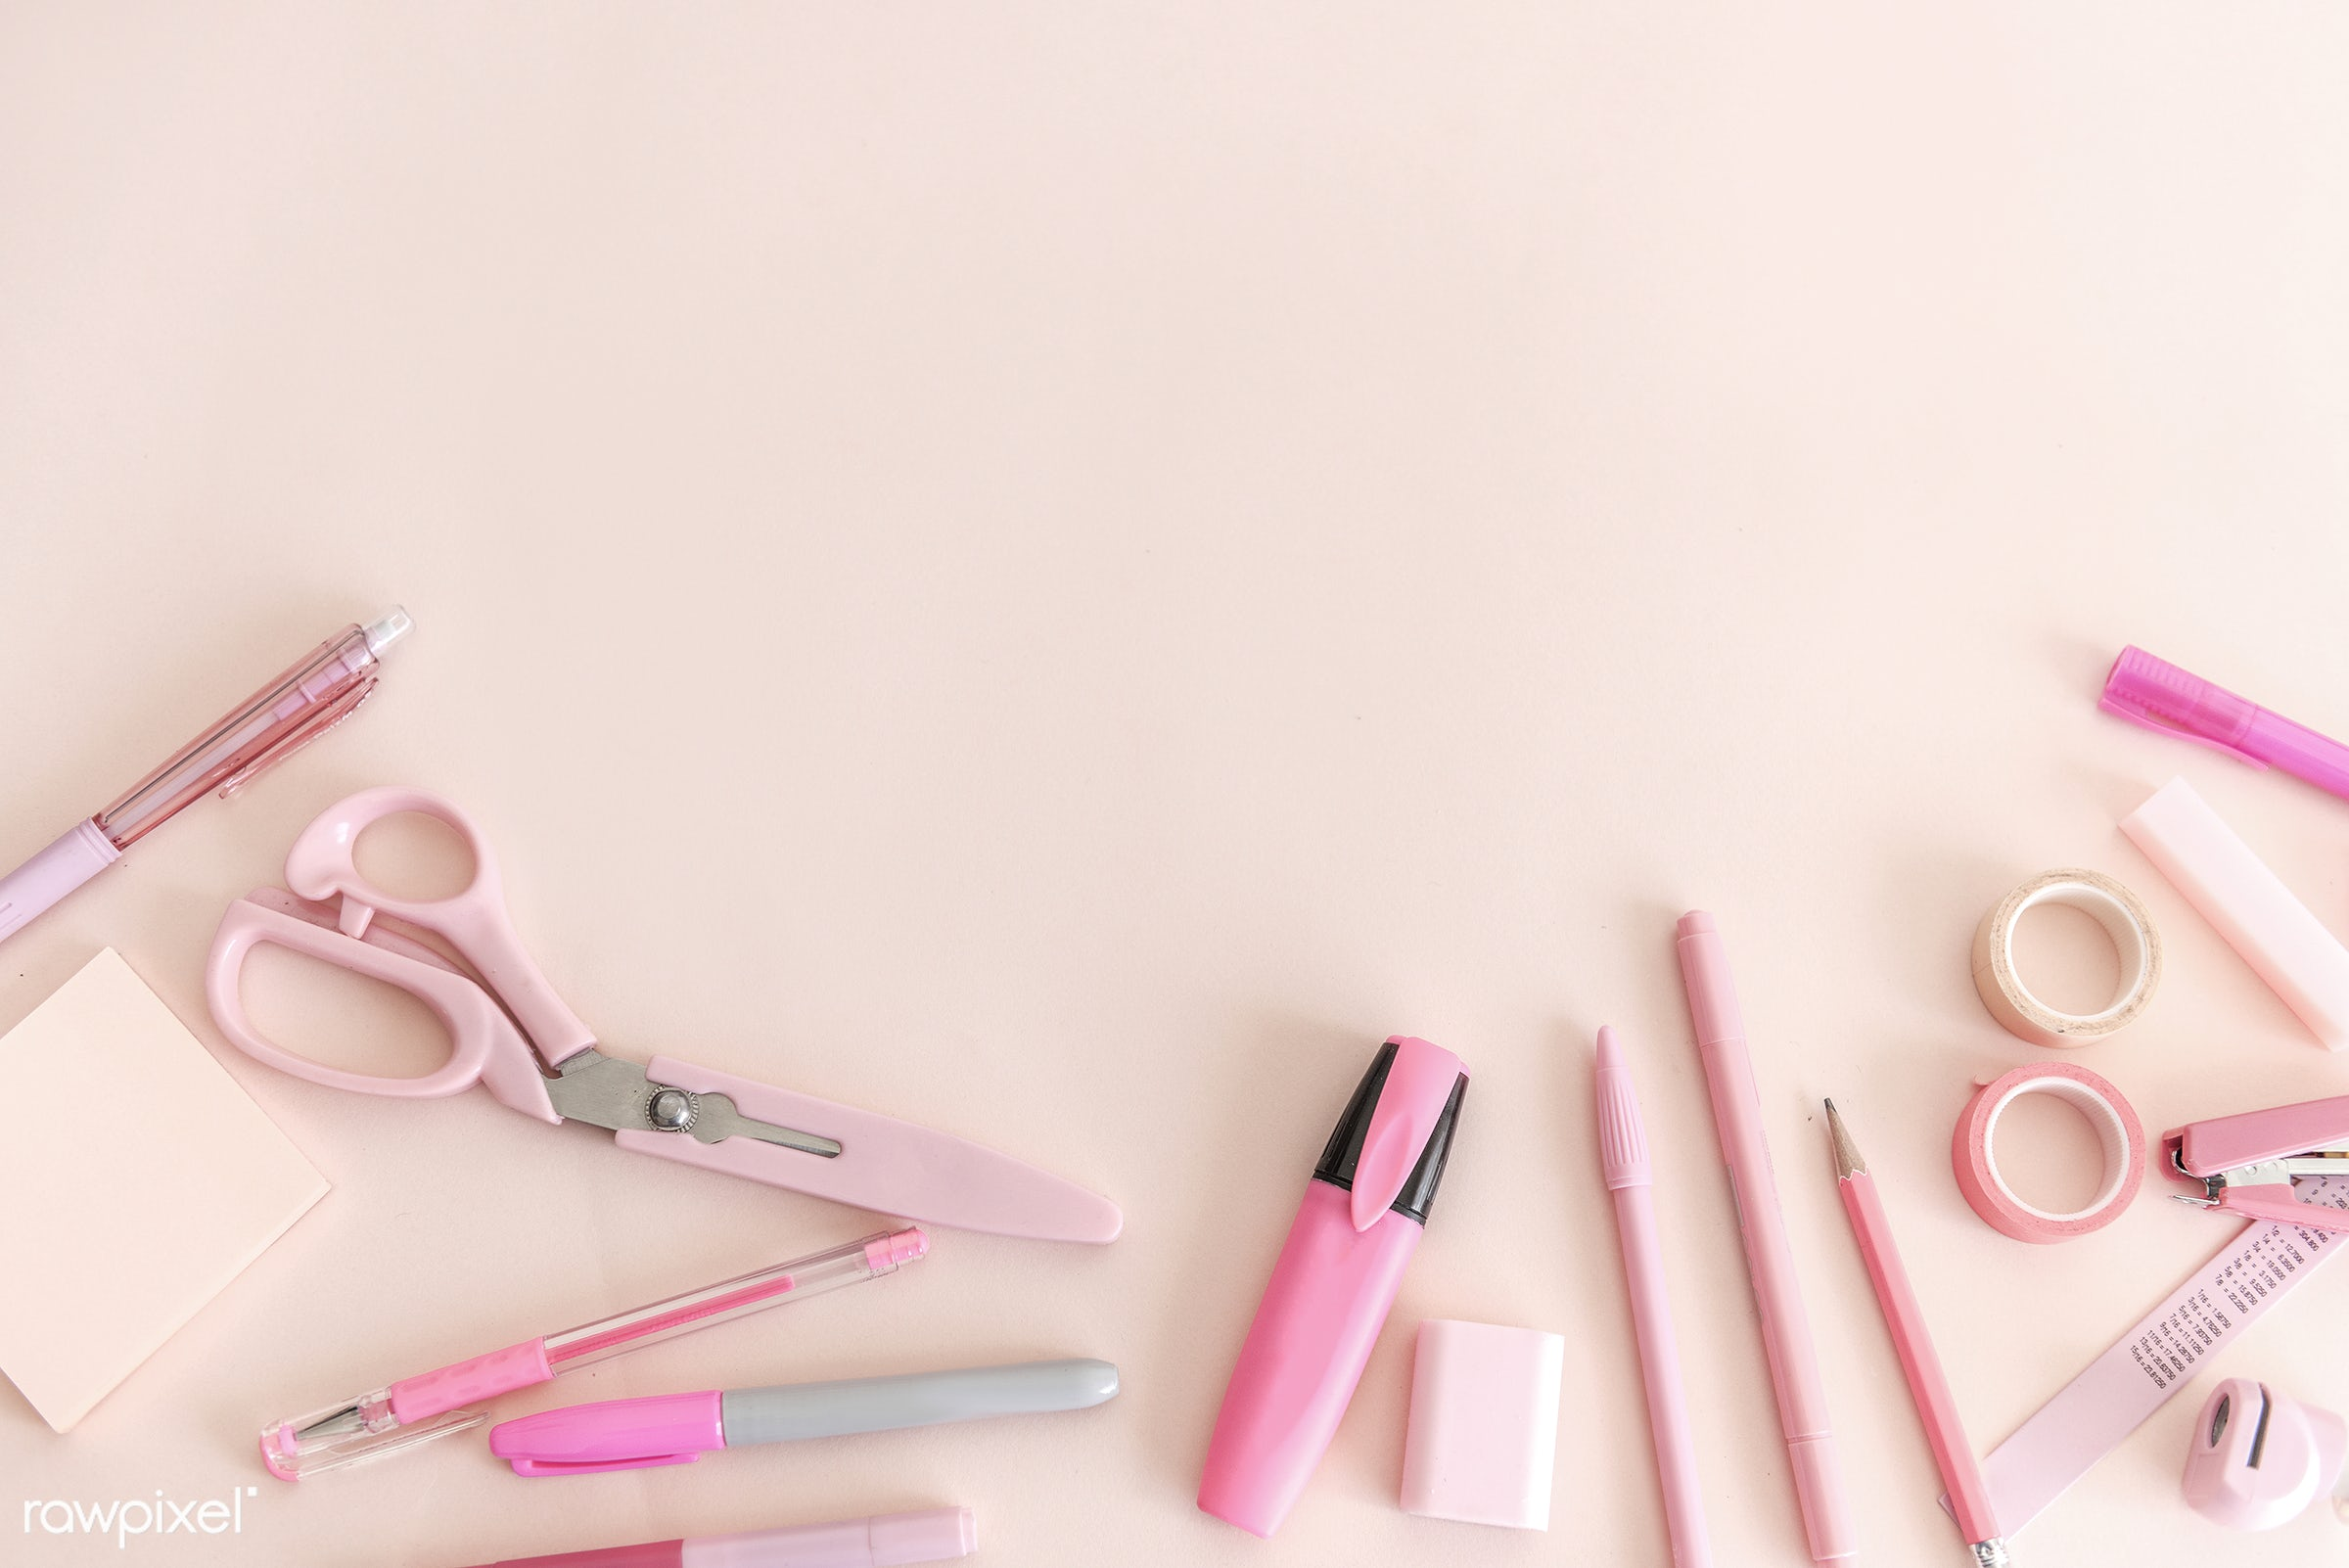 aerial, copy space, design space, flat lay, nobody, object, objects, pencils, pens, pink, scissors, space, stationery